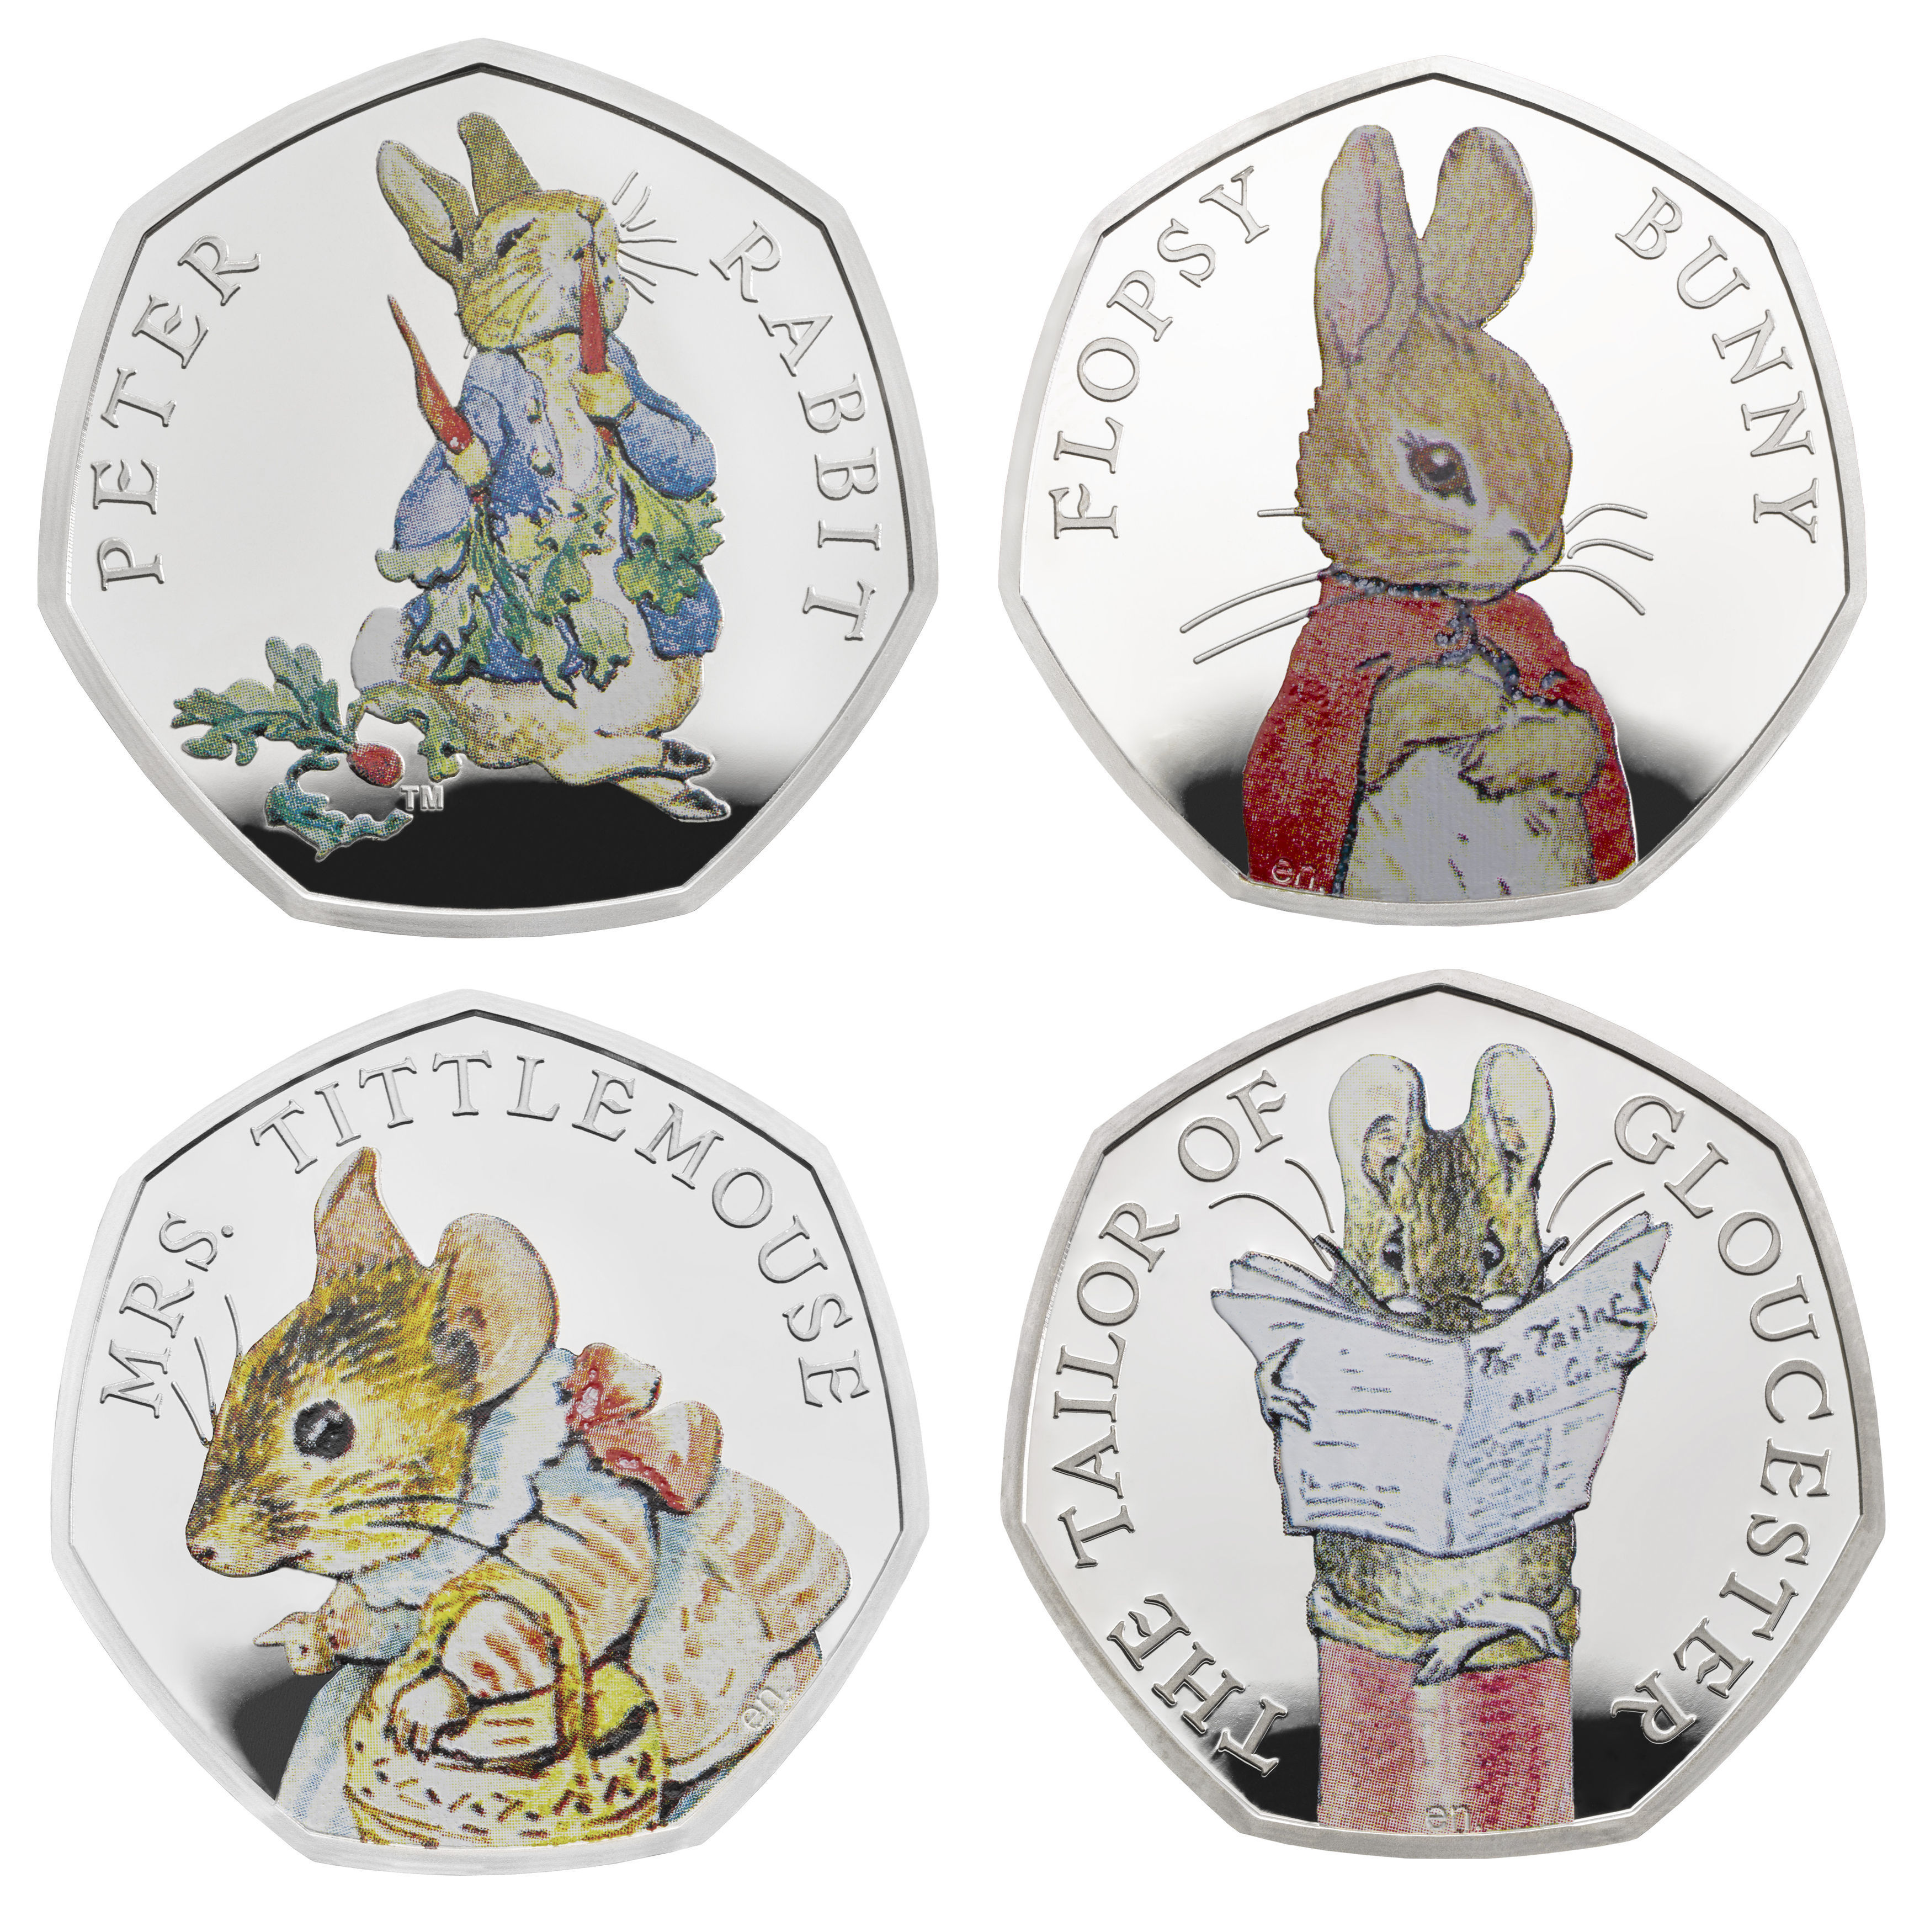 Hand Painted Coins Uk